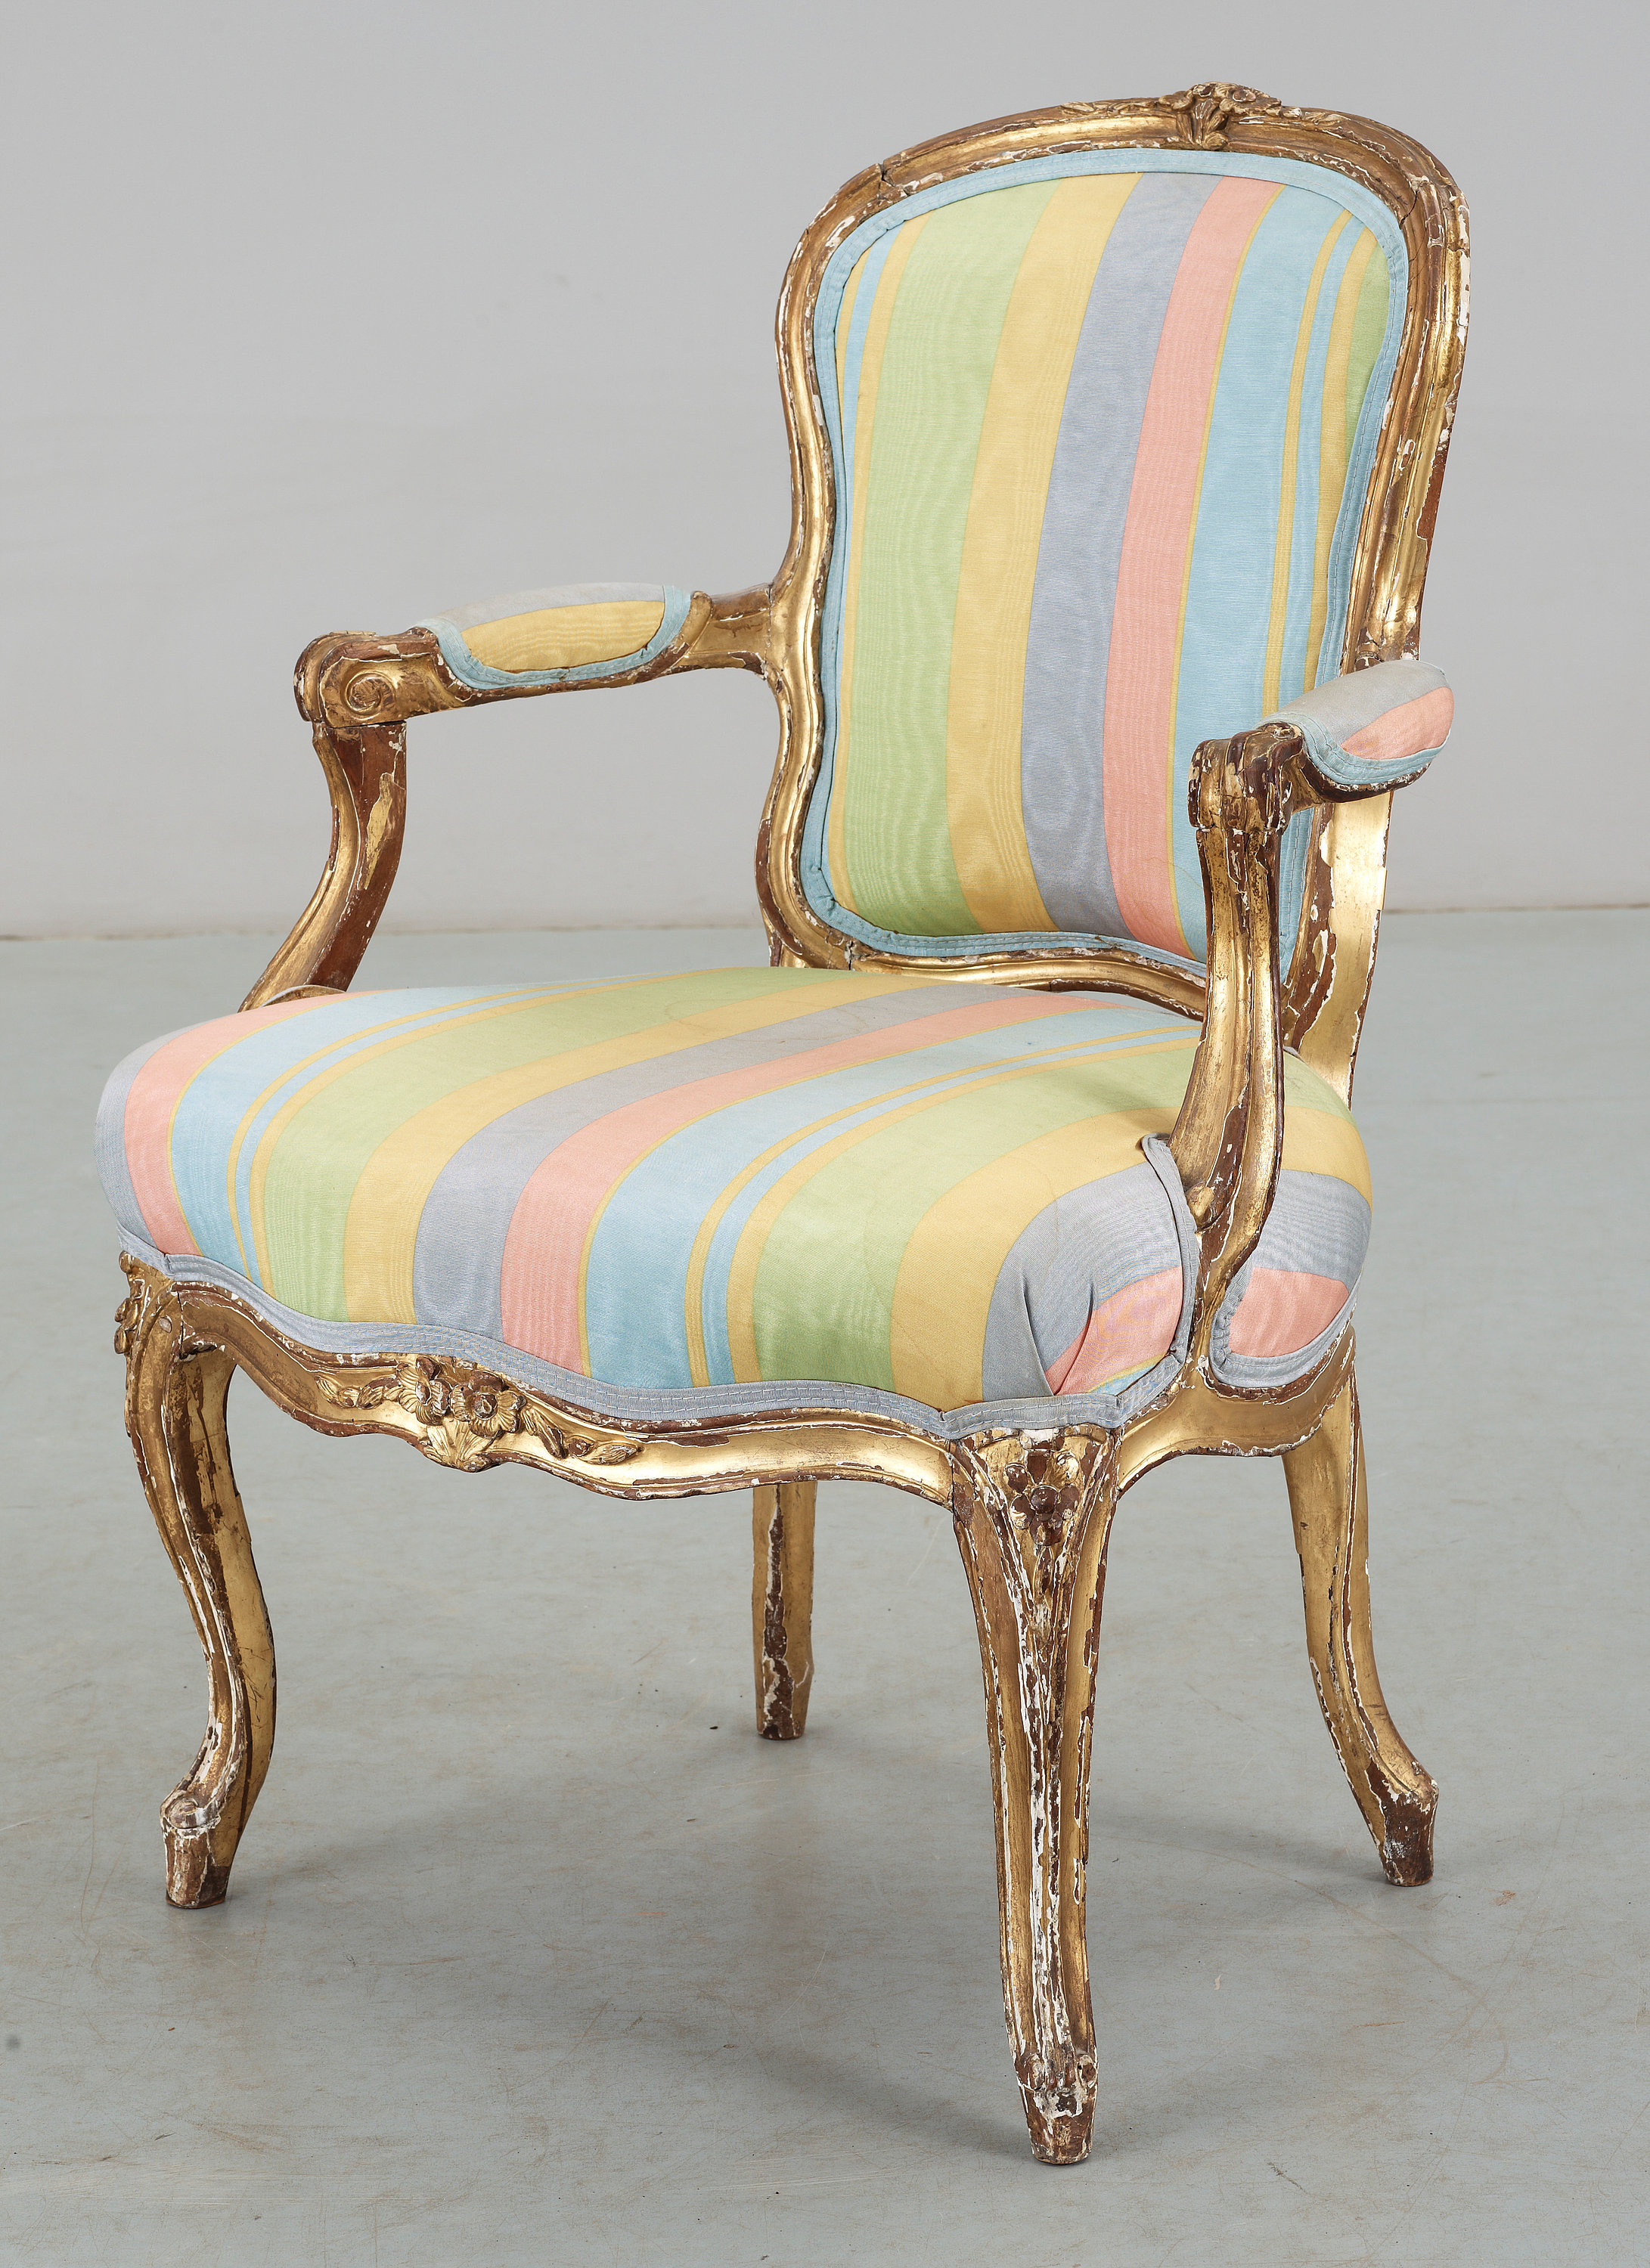 How to reupholster a louis chair - This Is A Louis